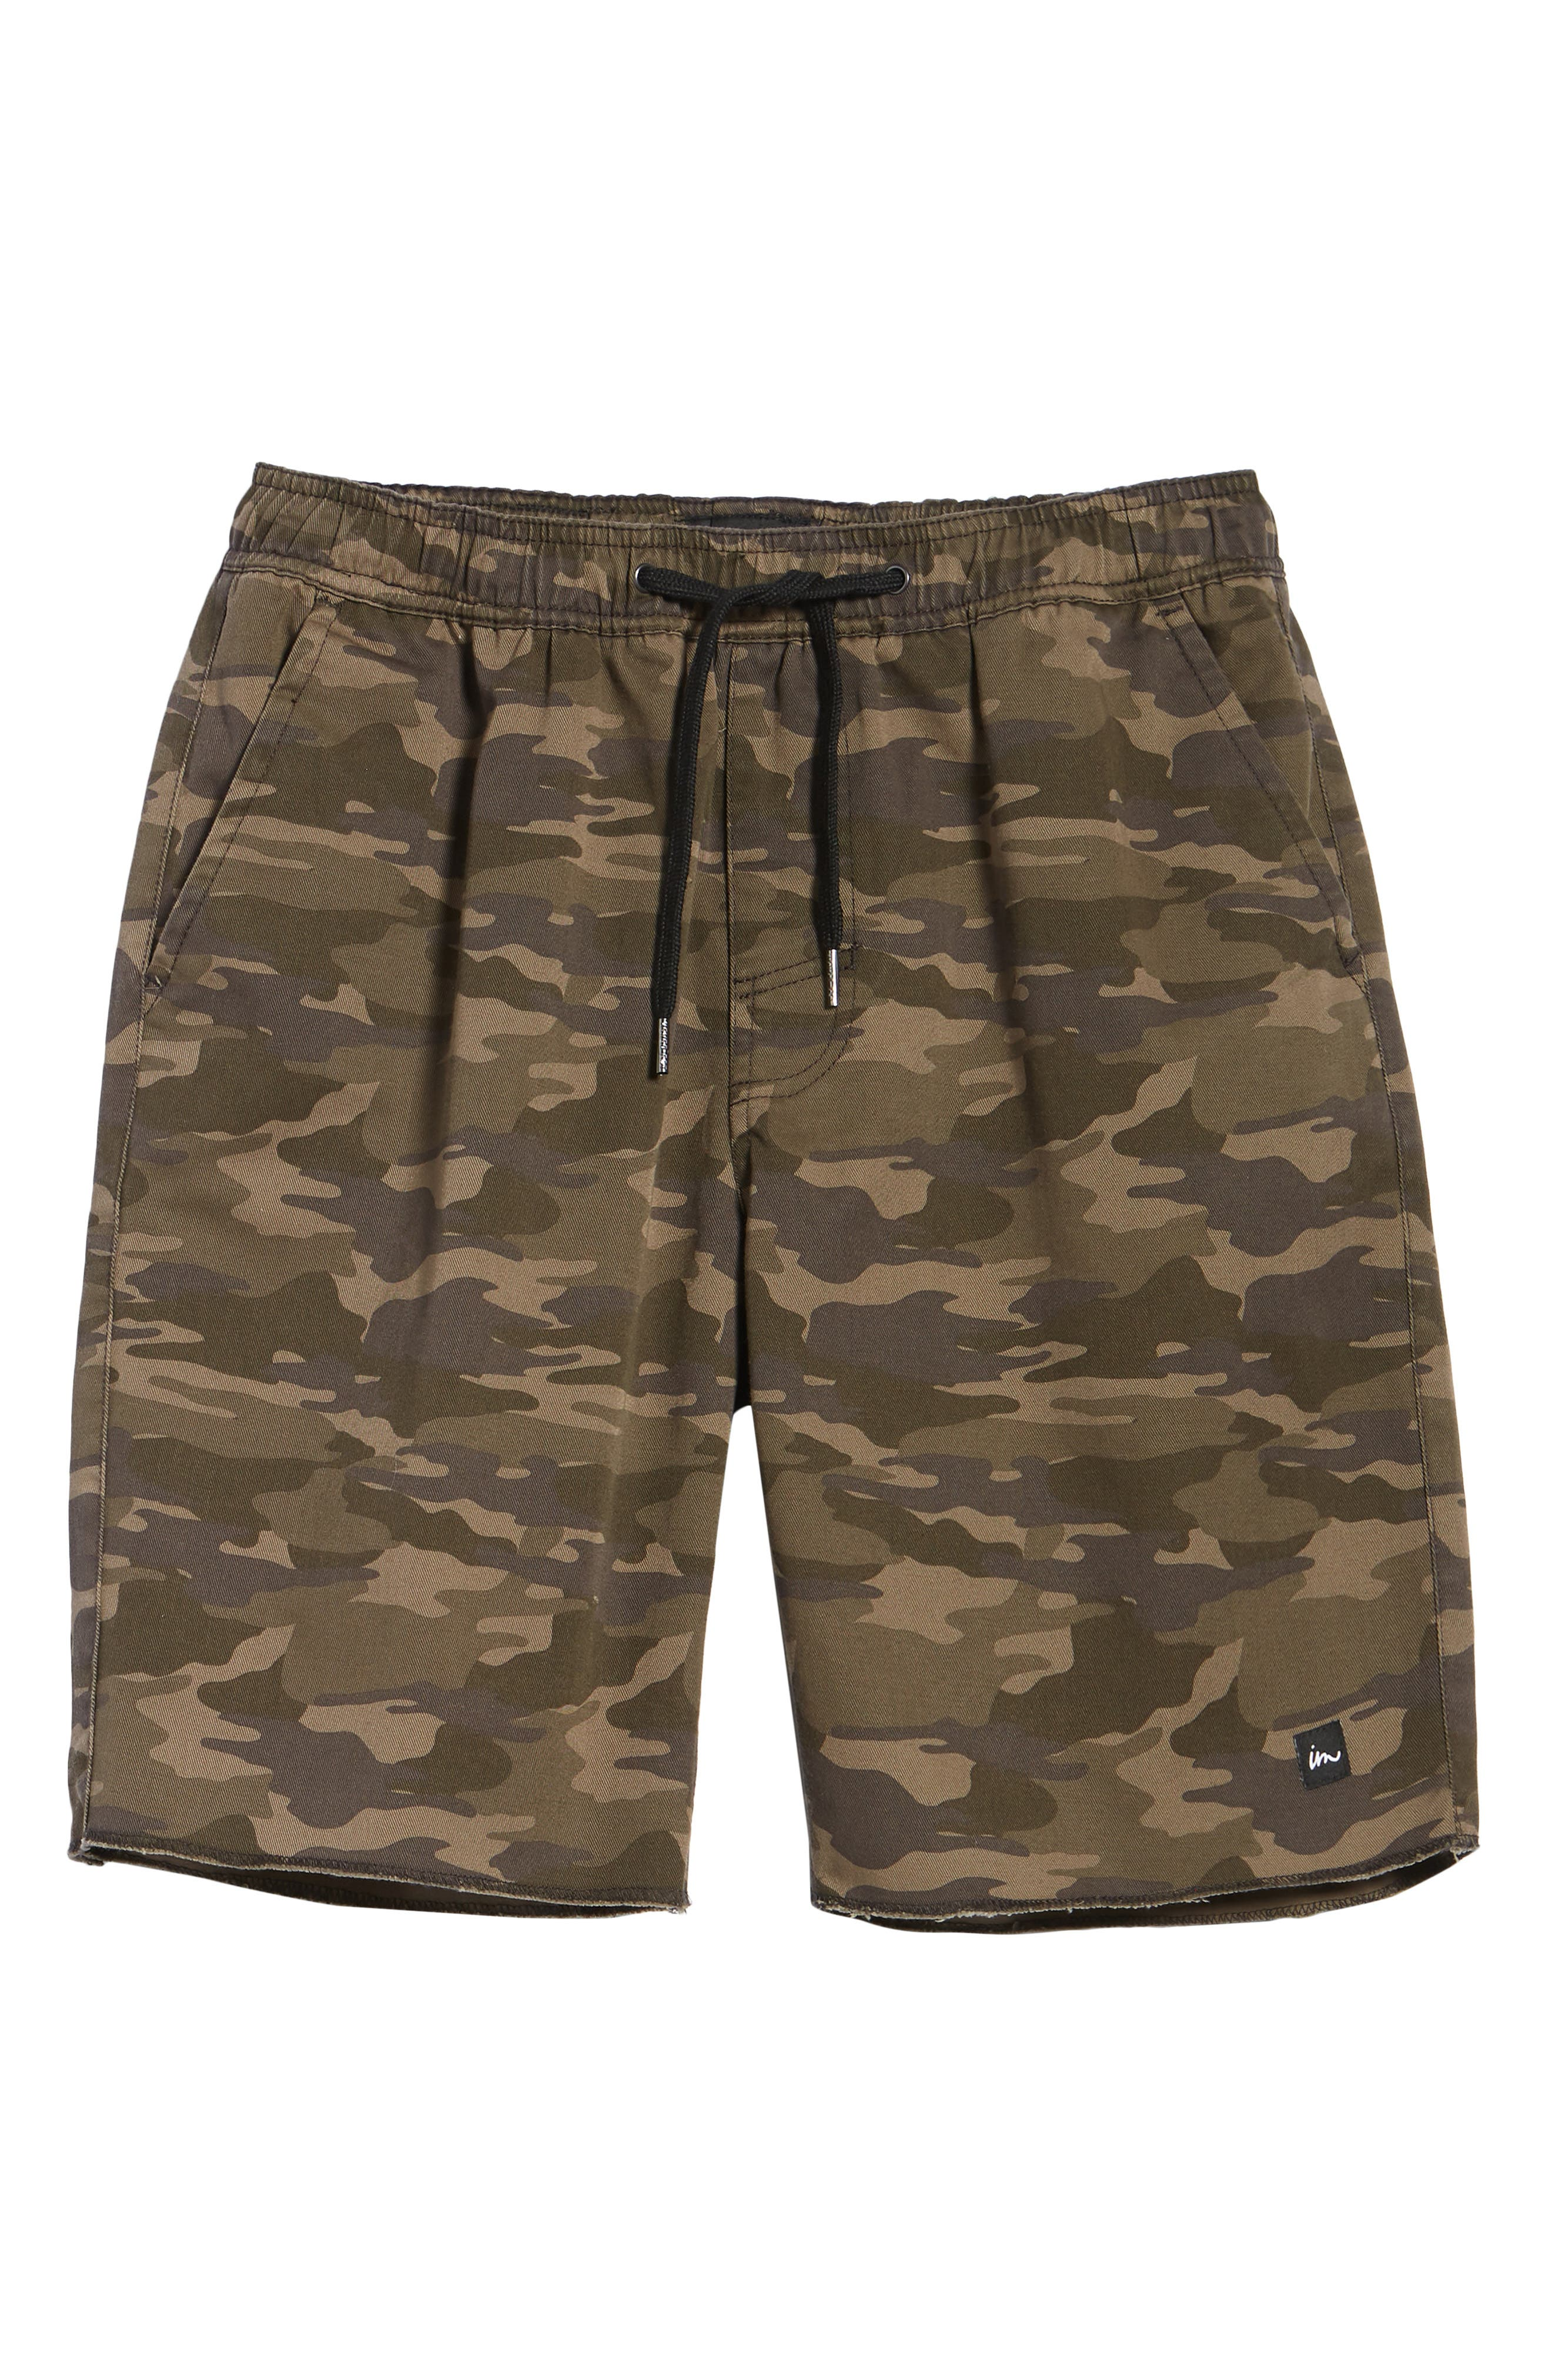 IMPERIAL MOTION,                             Denny Shorts,                             Alternate thumbnail 6, color,                             300